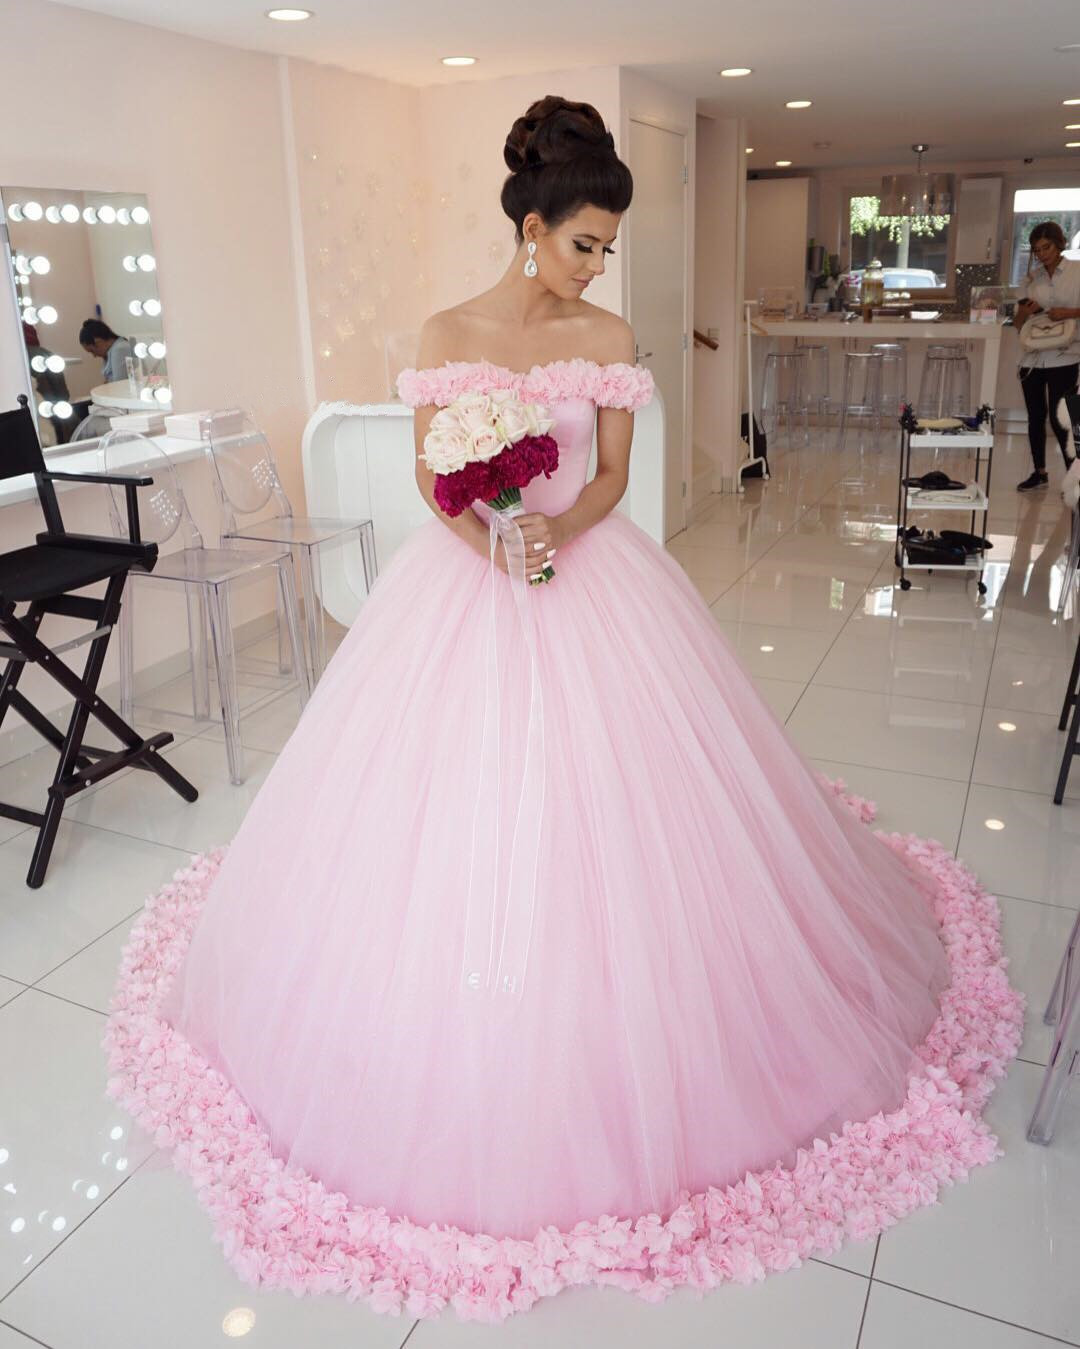 Pink White Princess Wedding Dresses: Pink Wedding Dress, Princess Wedding Dress, Elegant